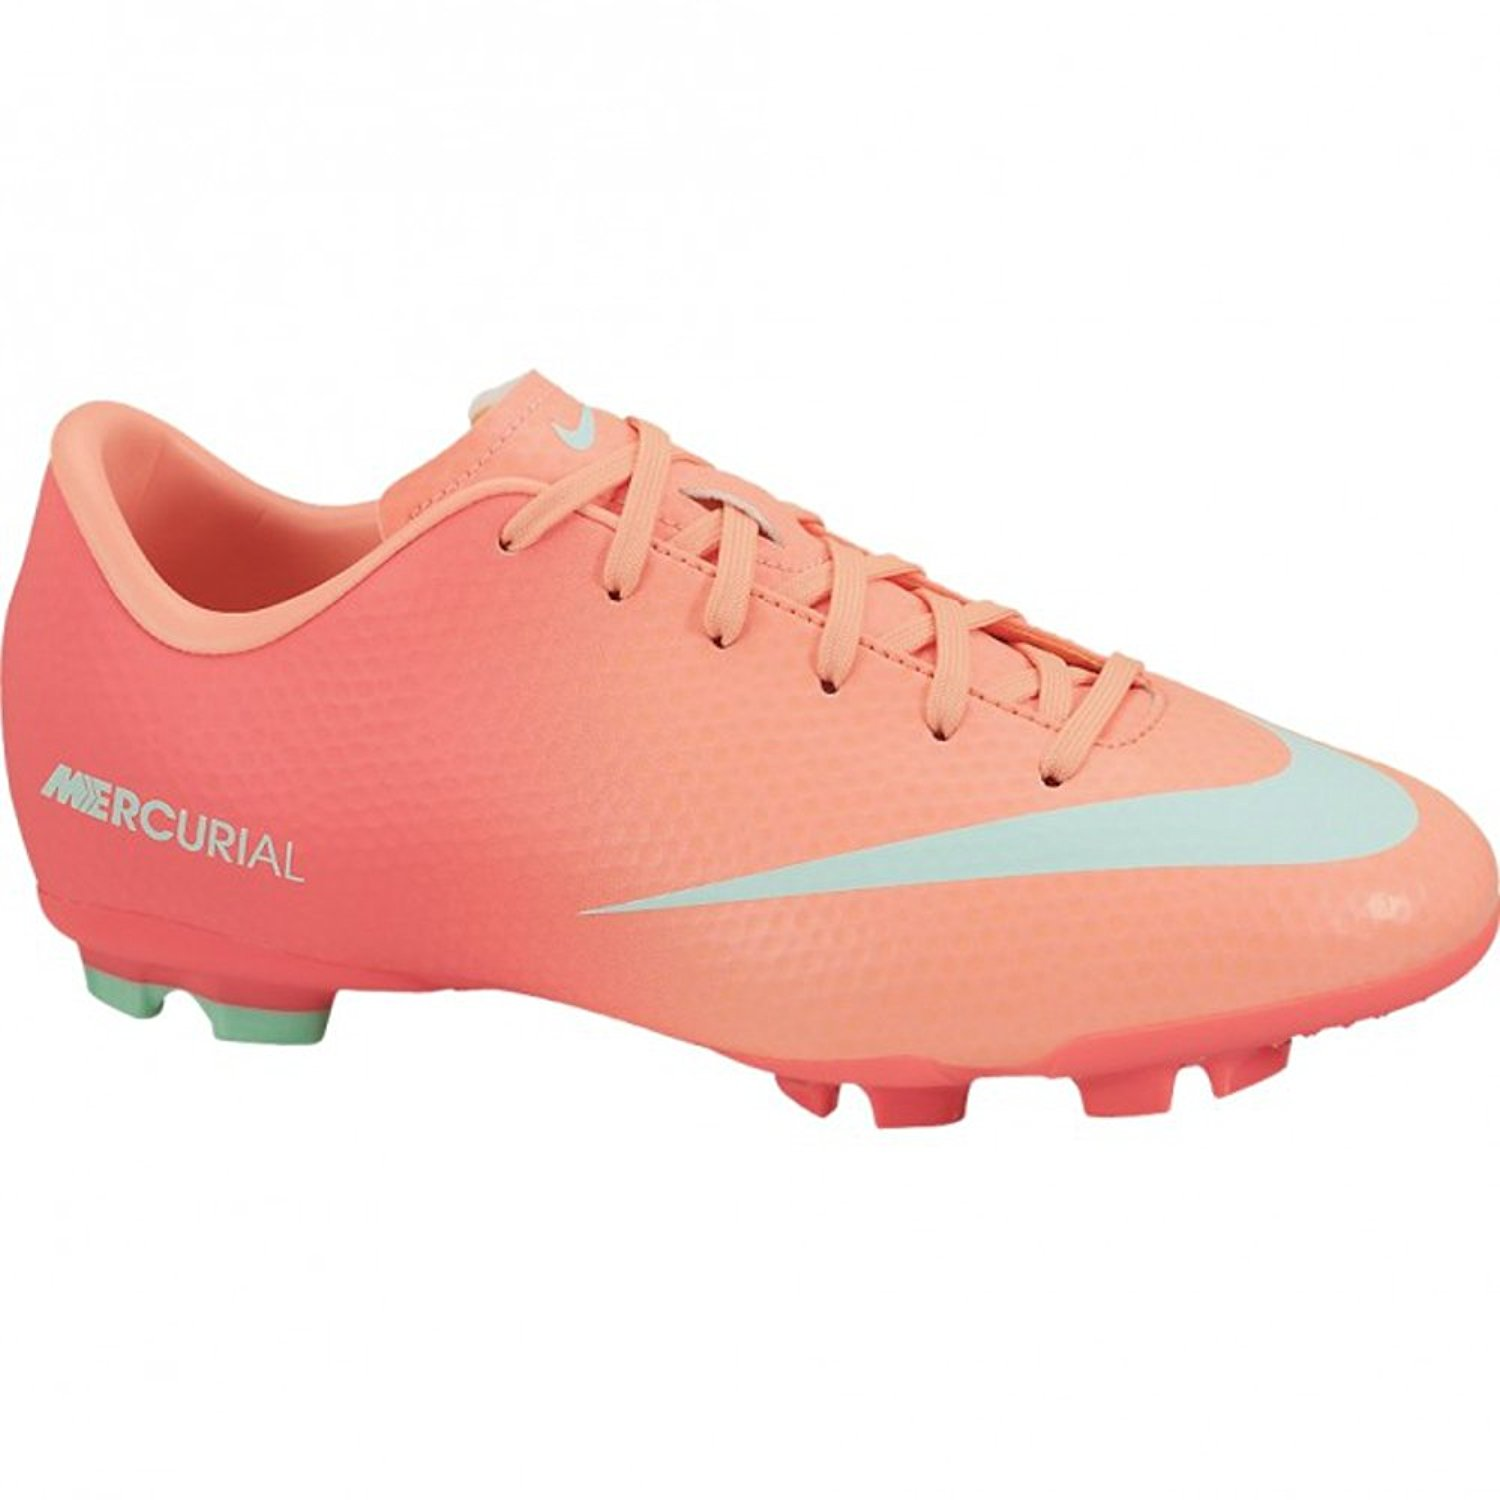 Intenso borde rechazo  nike youth soccer boots Shop Clothing & Shoes Online